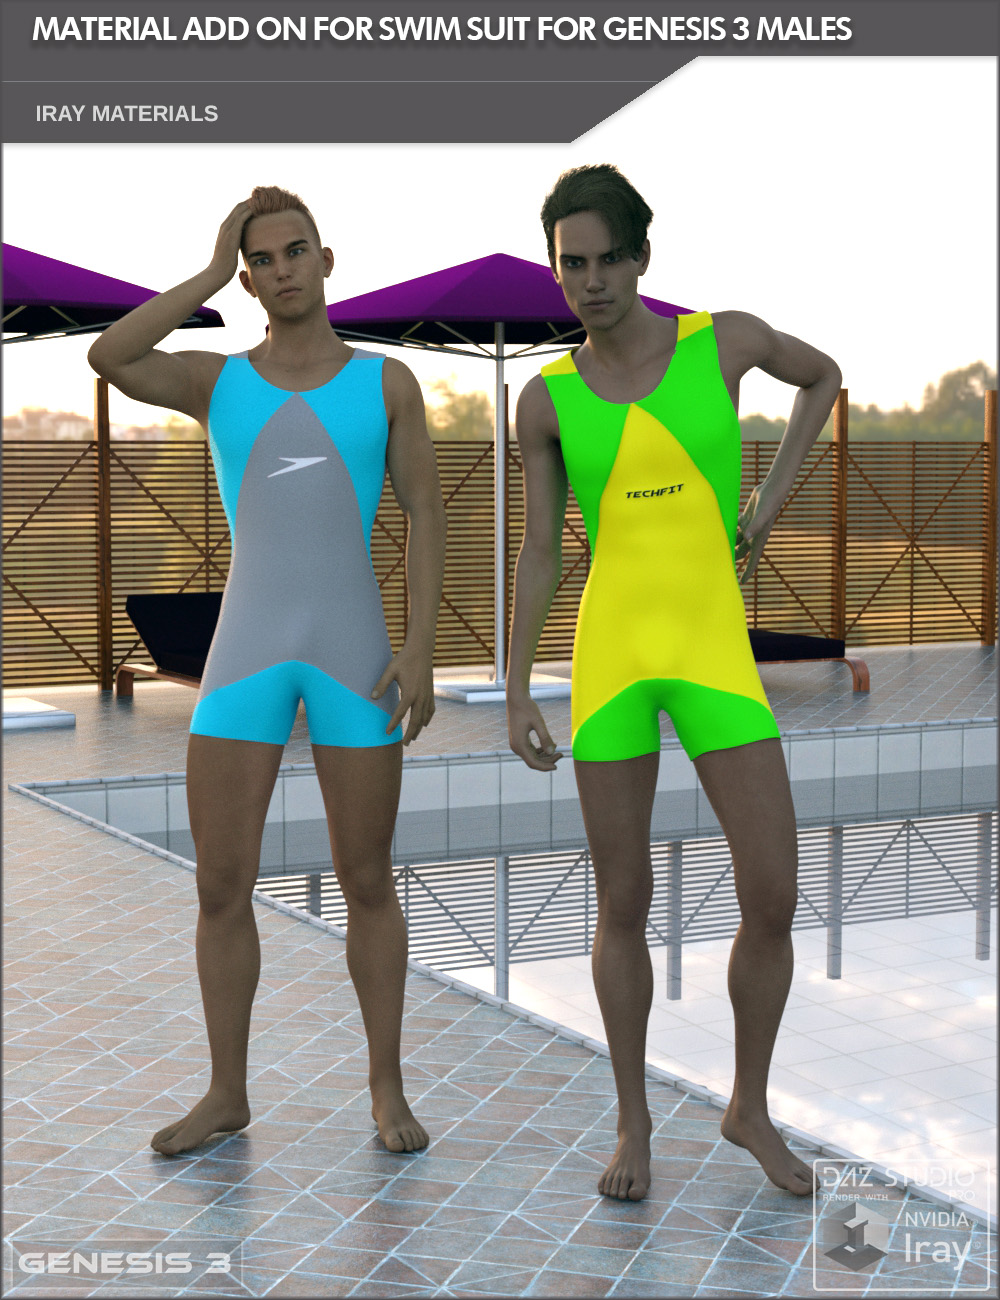 Add On for Male Swim Suit for Genesis 3 Males